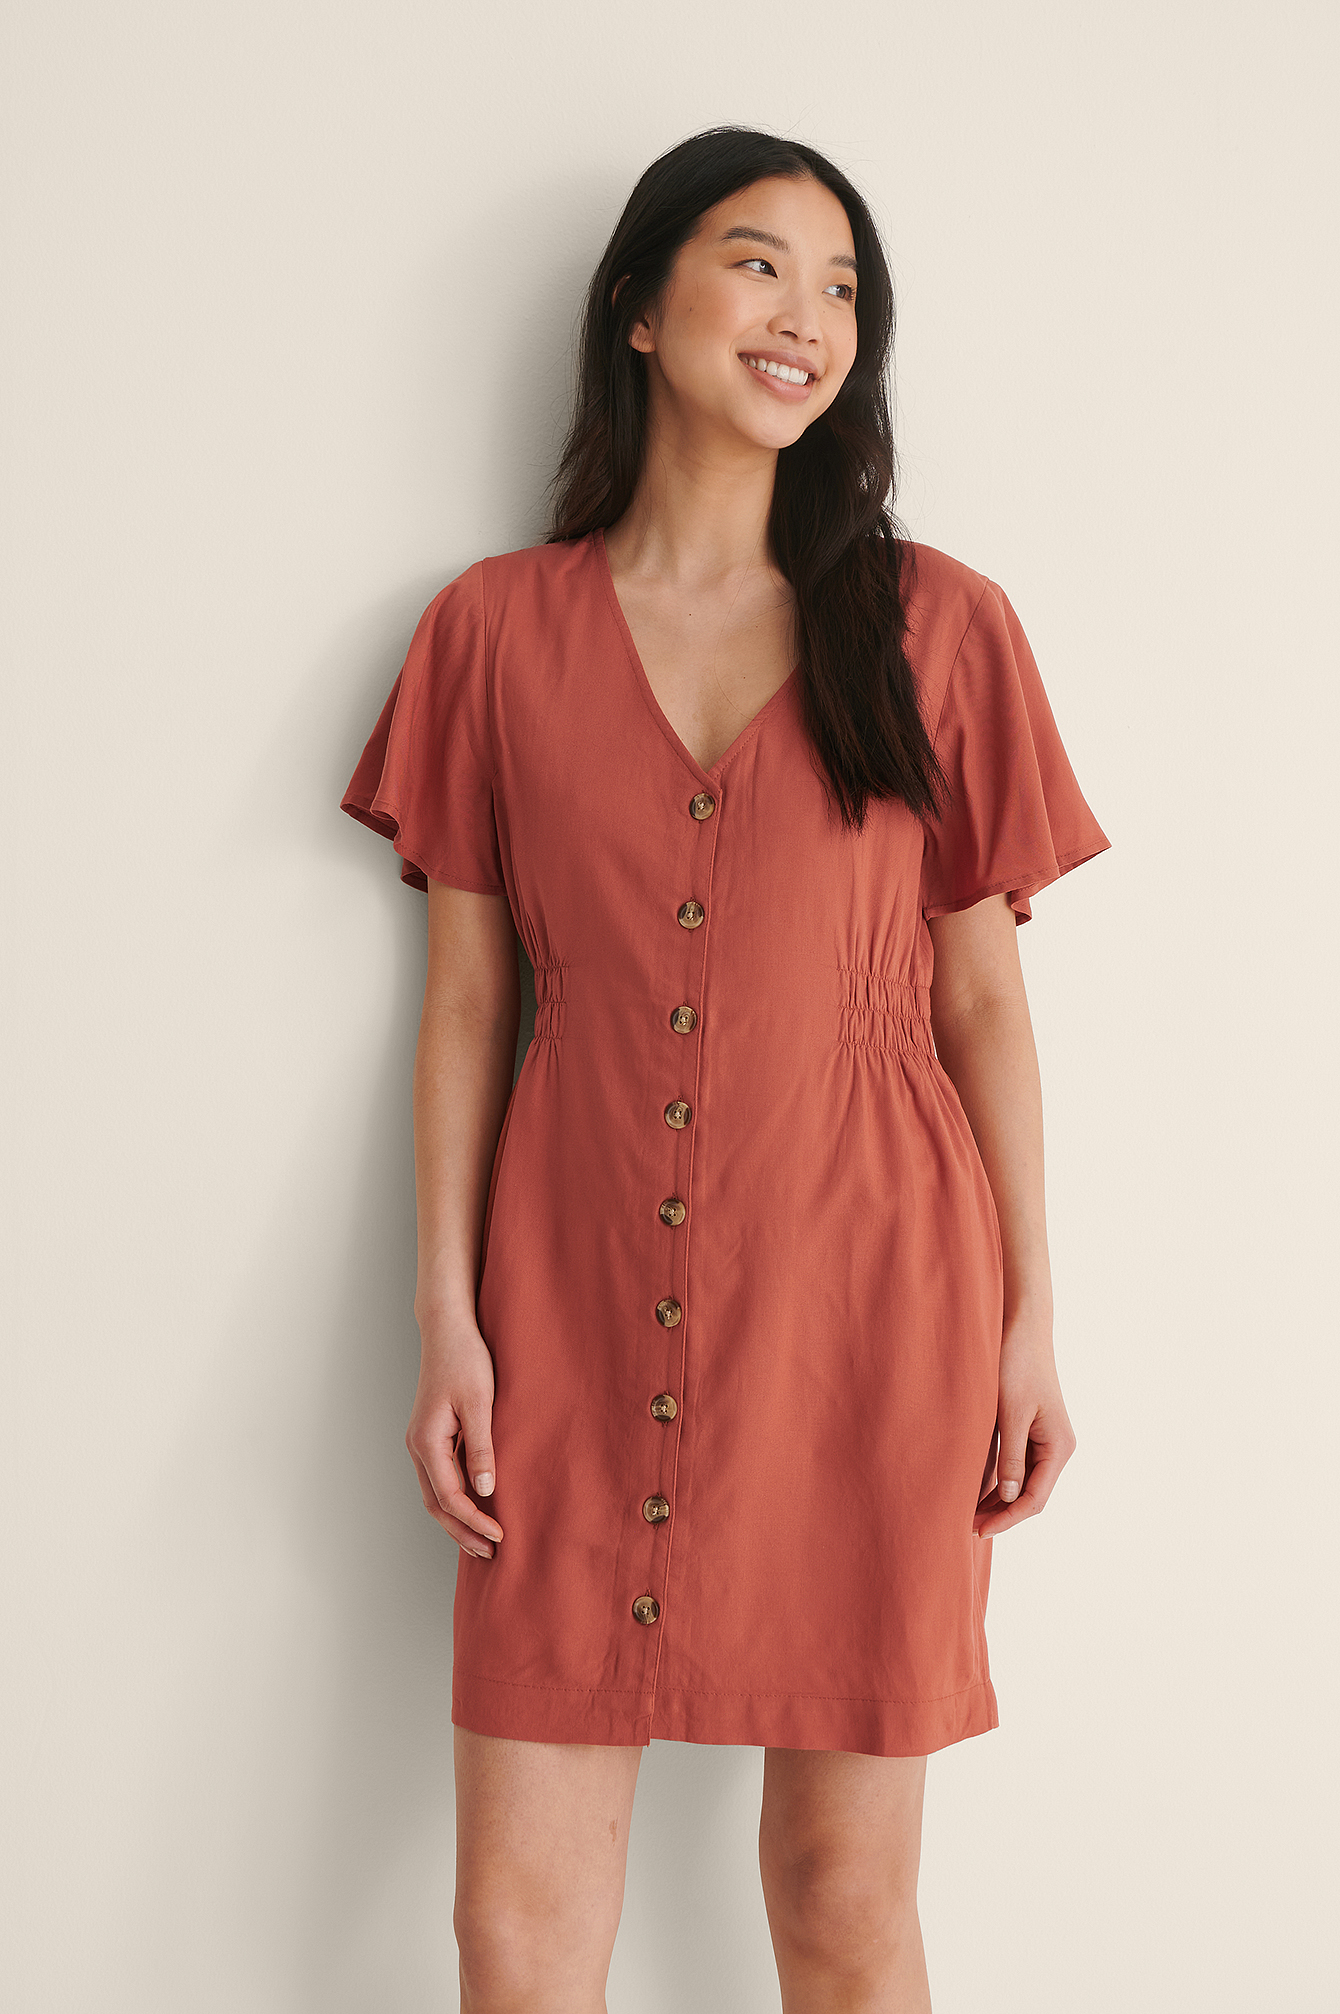 Rust Taille Courte Robe Boutonnée